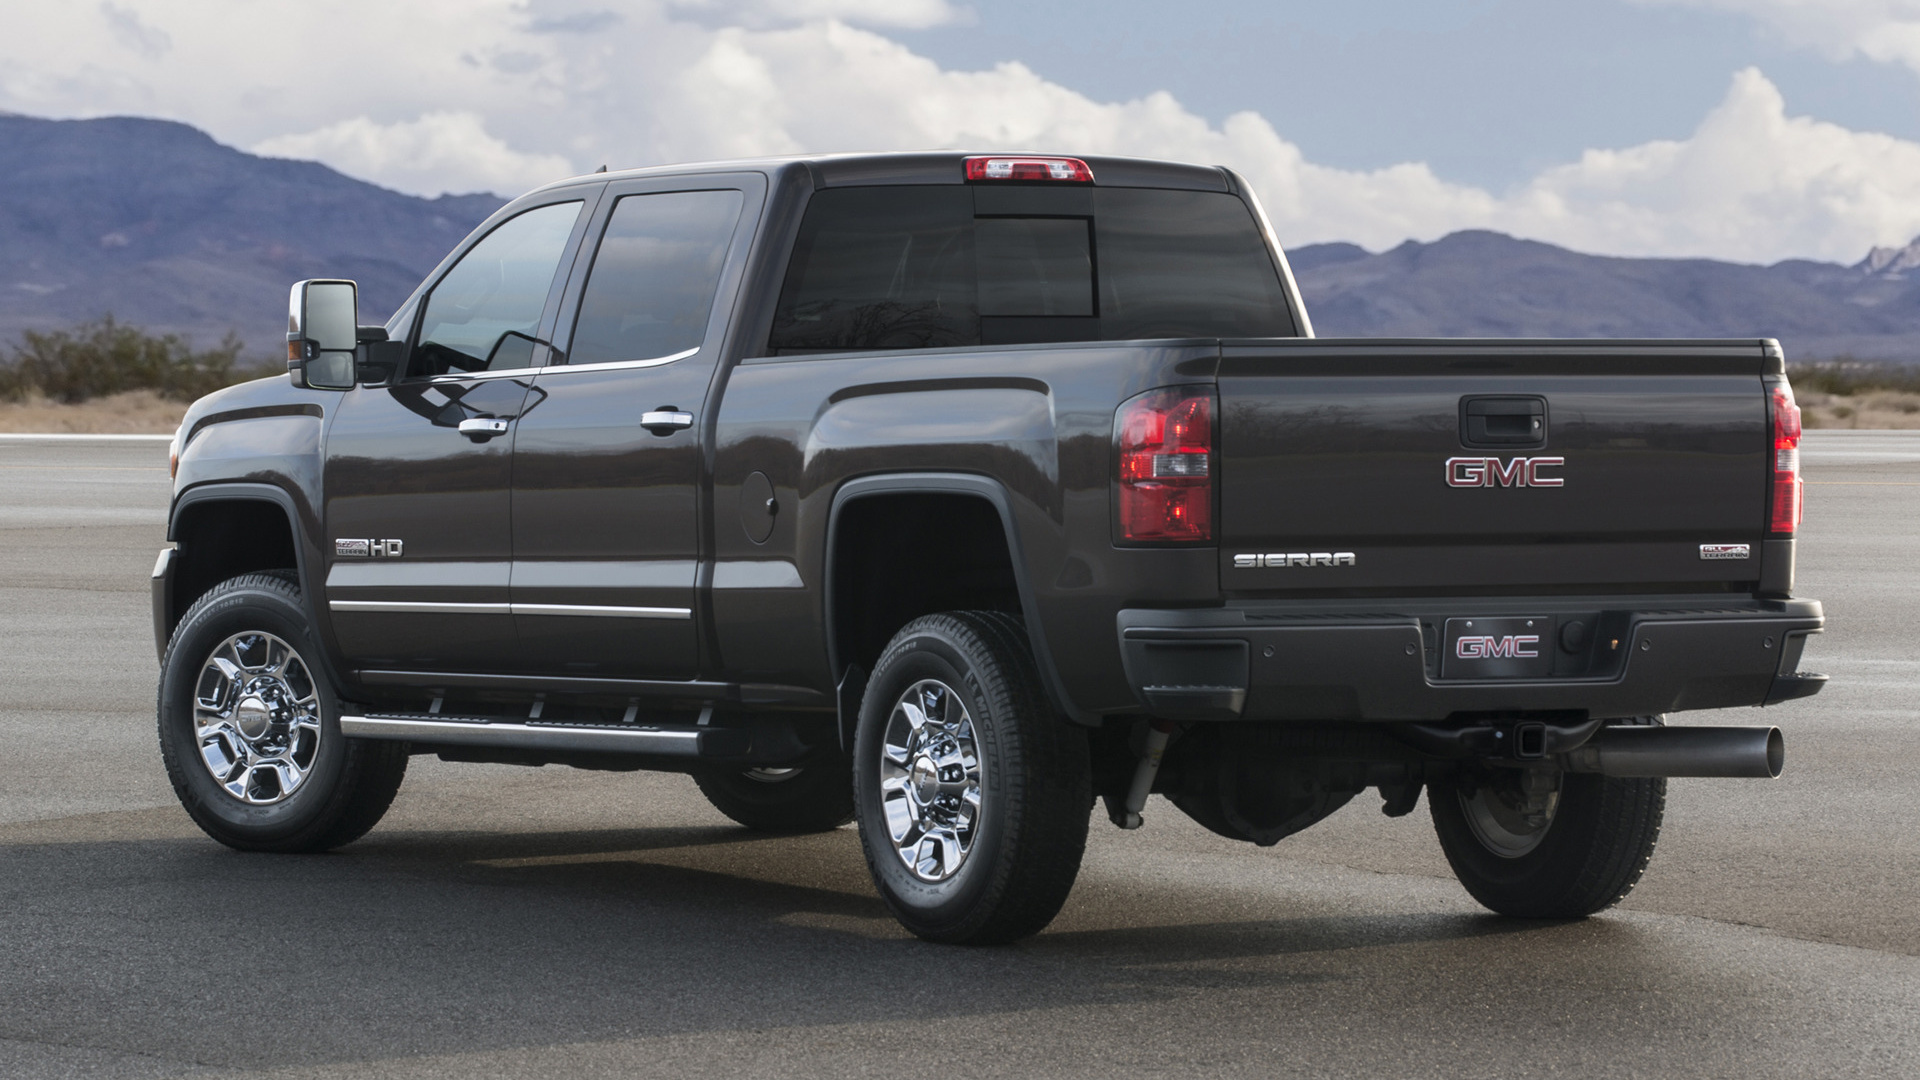 2015 GMC Sierra All Terrain 2500 HD Crew Cab - Wallpapers ...